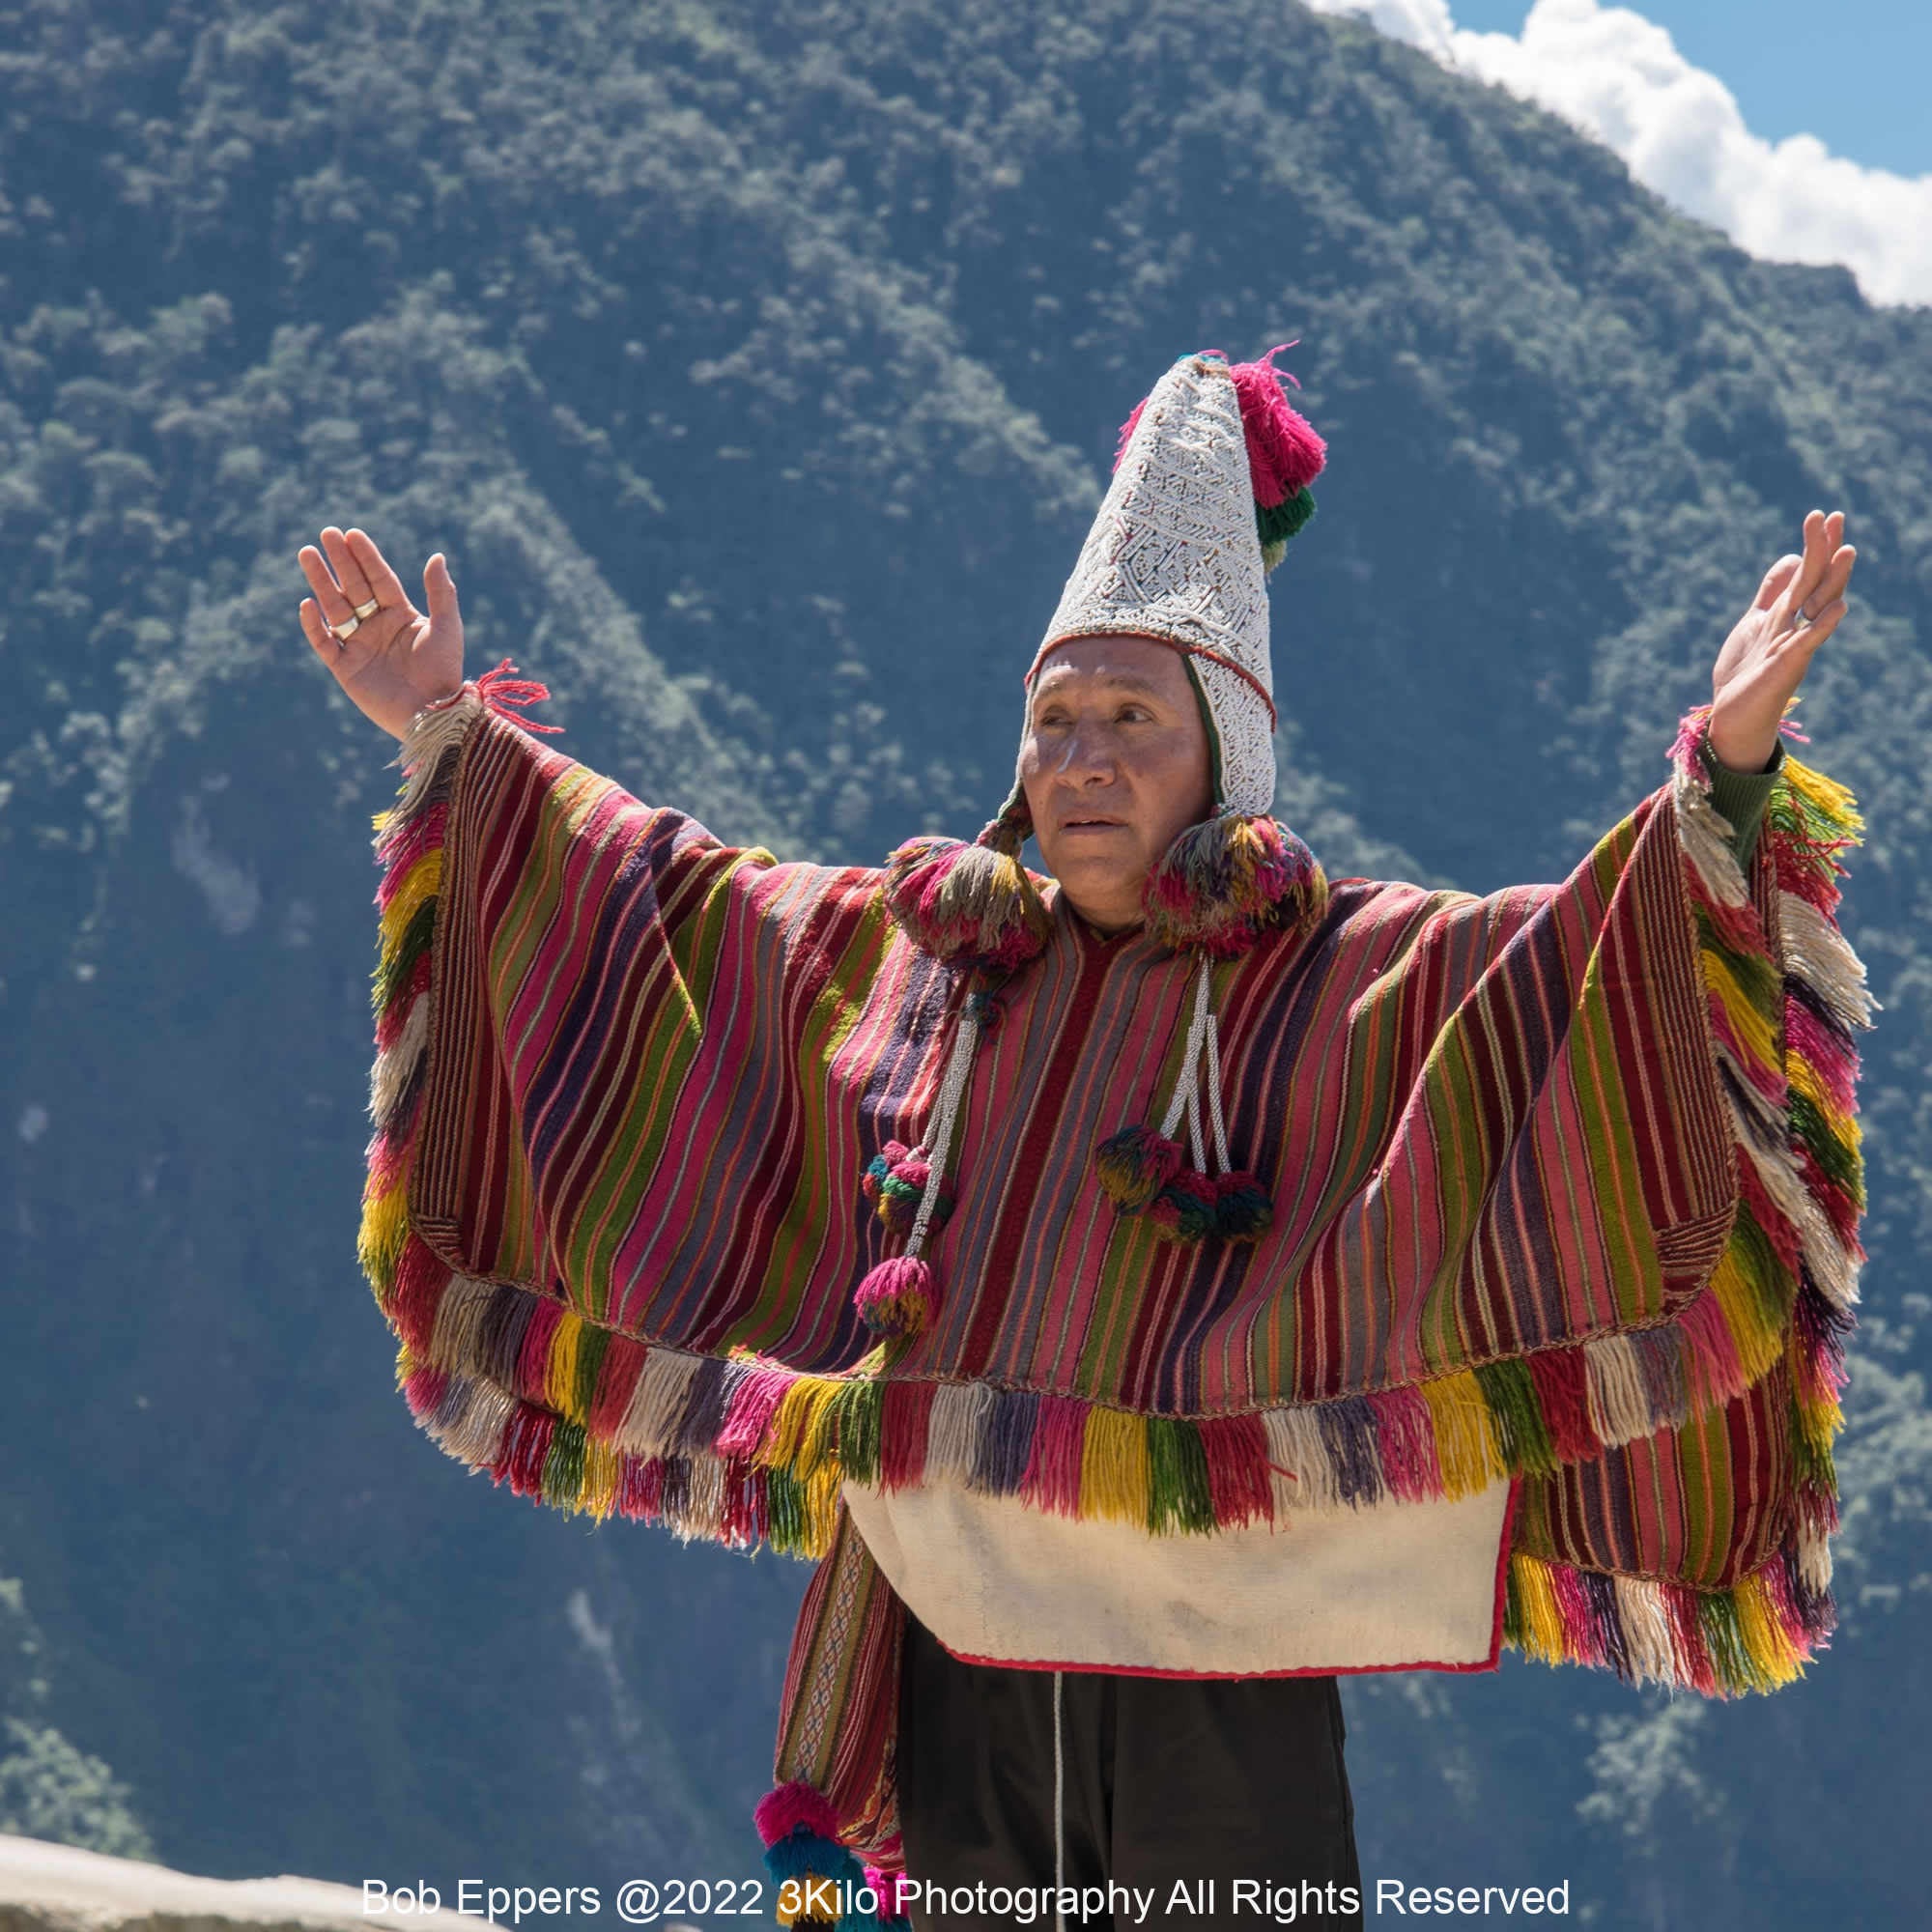 Photo of an Inca Shamen giving a Blessing at Machu Picchu in Peru